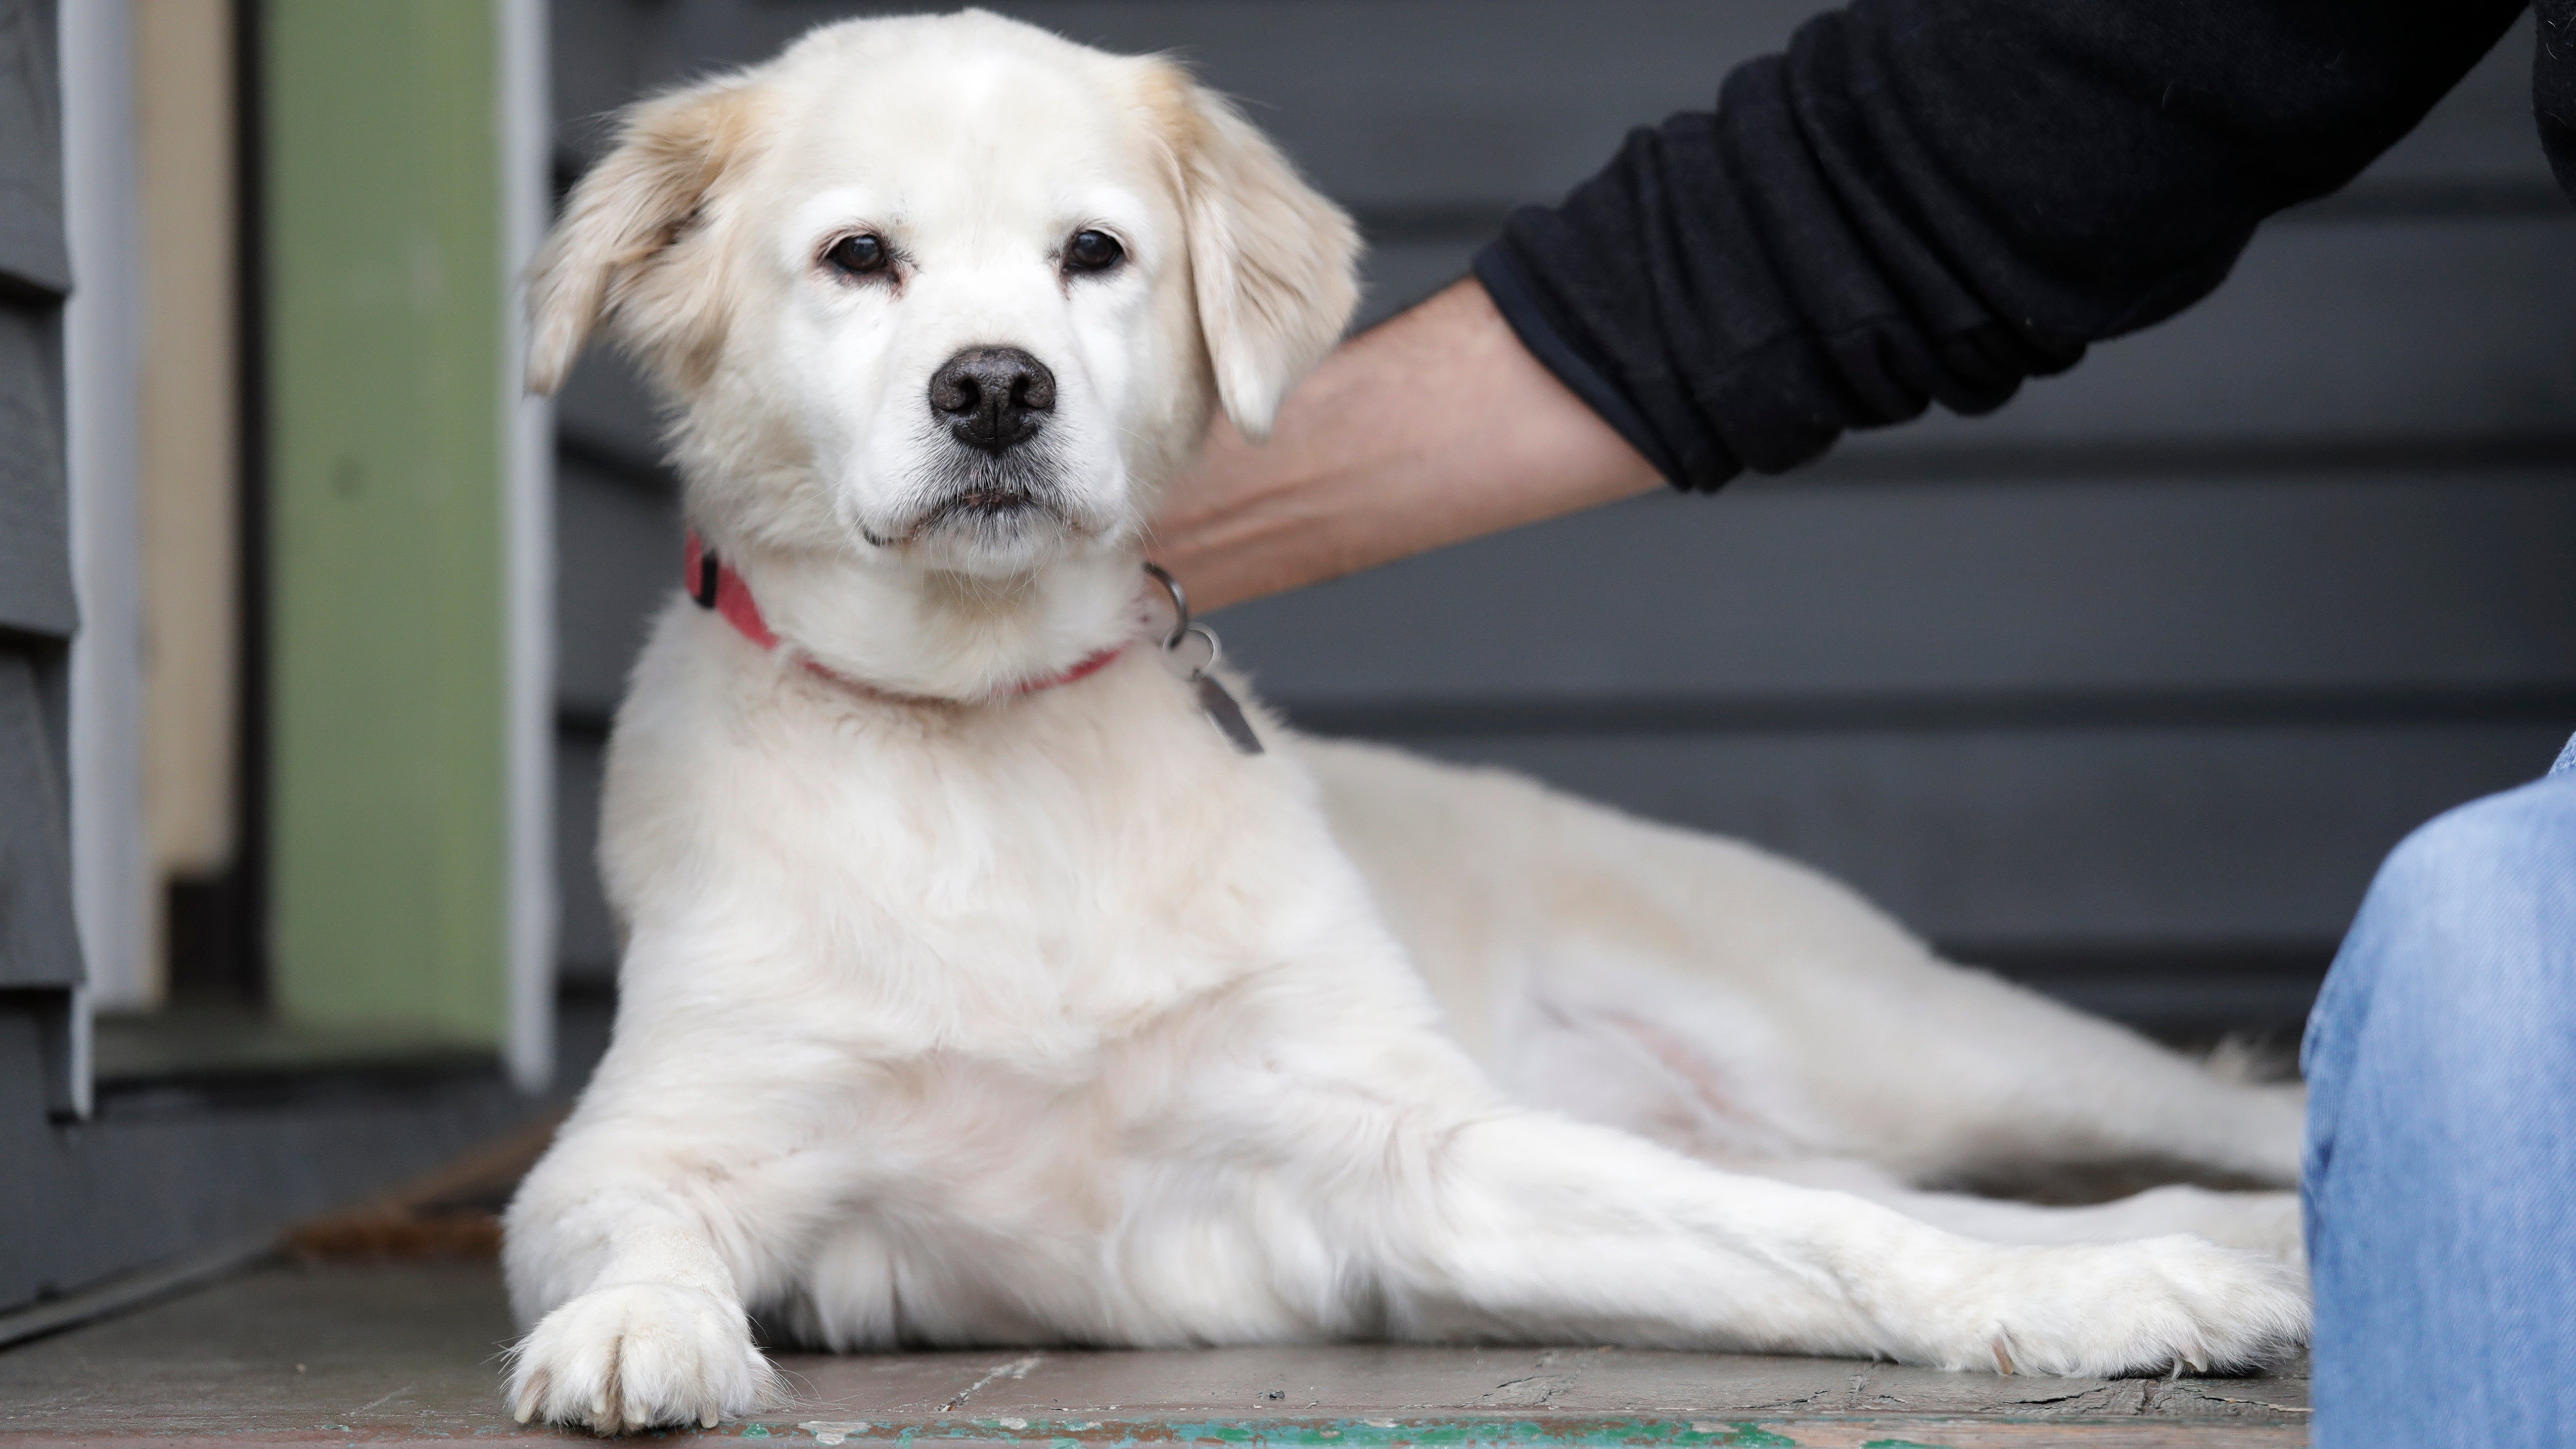 German Man Develops Fatal Infection After Being Licked By His Dog